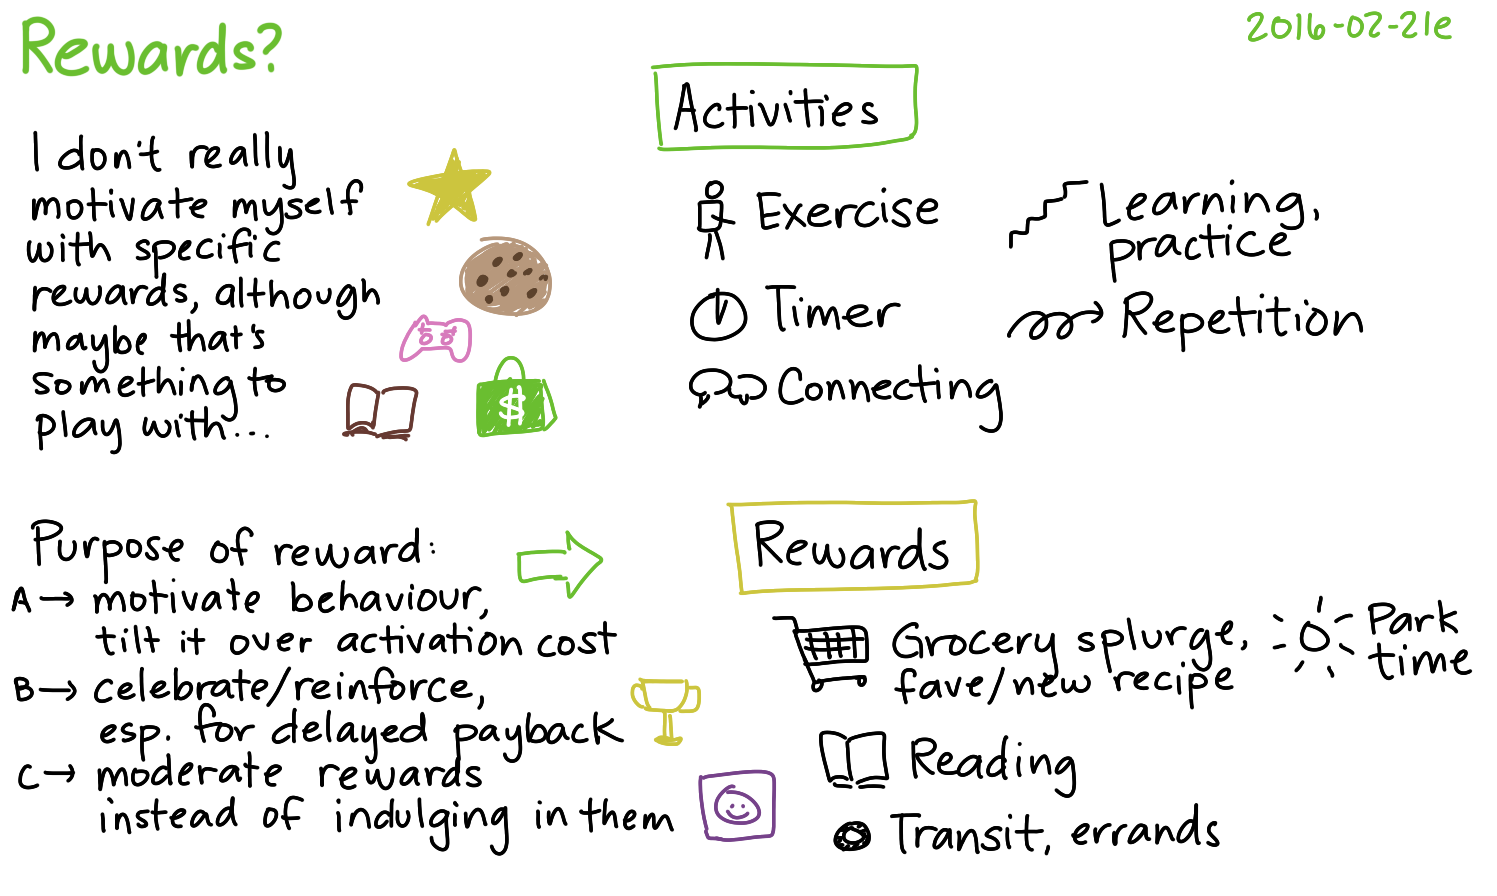 2016-02-21e Rewards -- index card #gamification #rewards.png